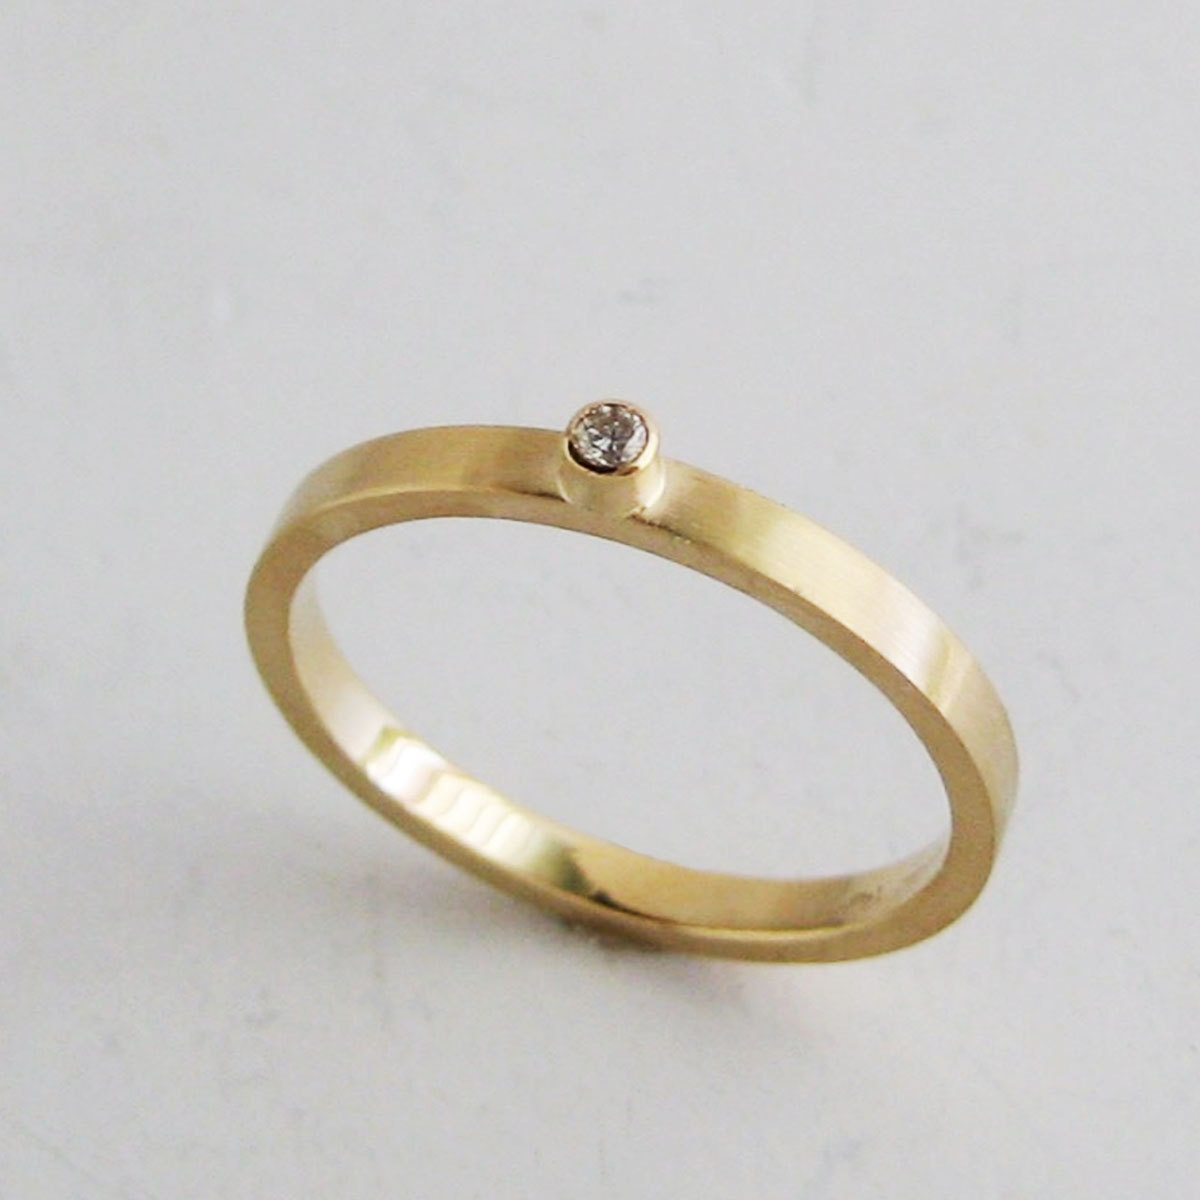 Small Diamond Ring2mm Gold Band With Bezel Set Diamondrecycled Diamond  Ring